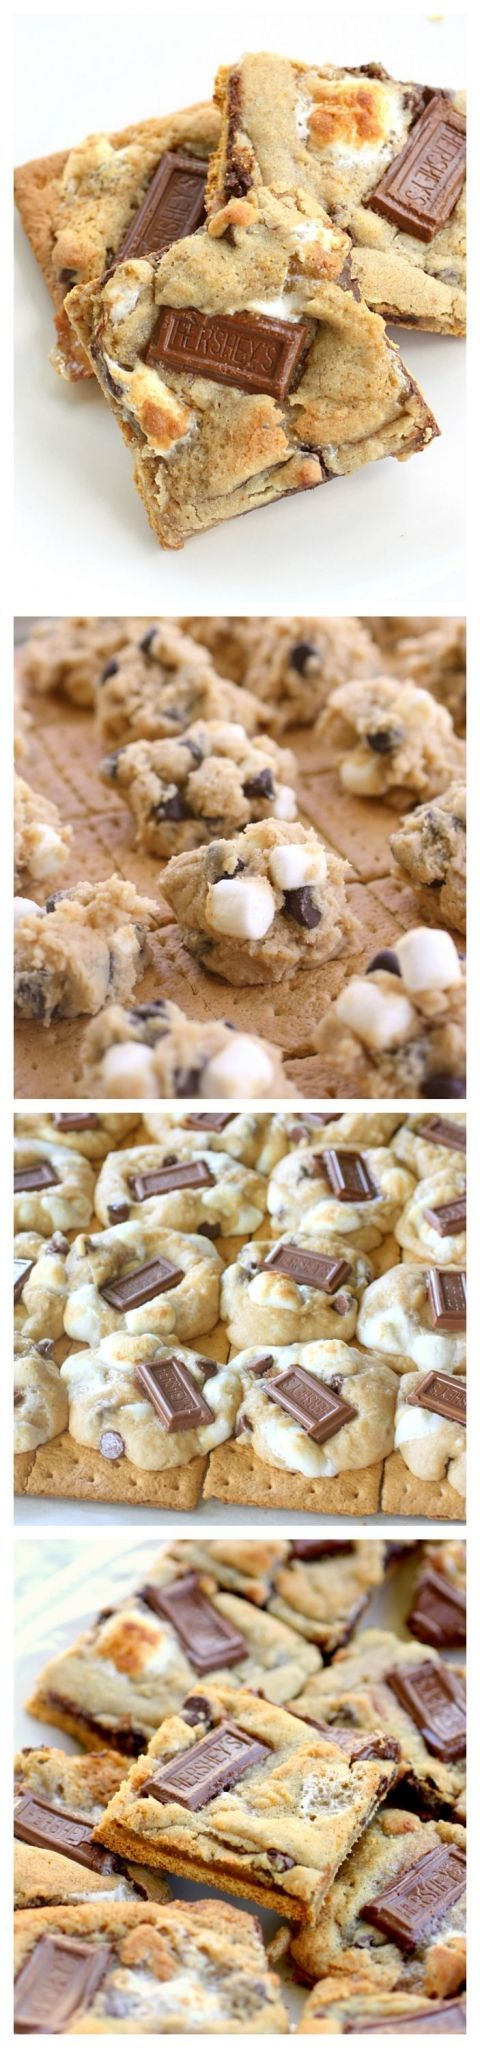 S'mores Cookies - graham crackers topped with chocolate chip marshmallow cookie dough and topped with Hershey squares.